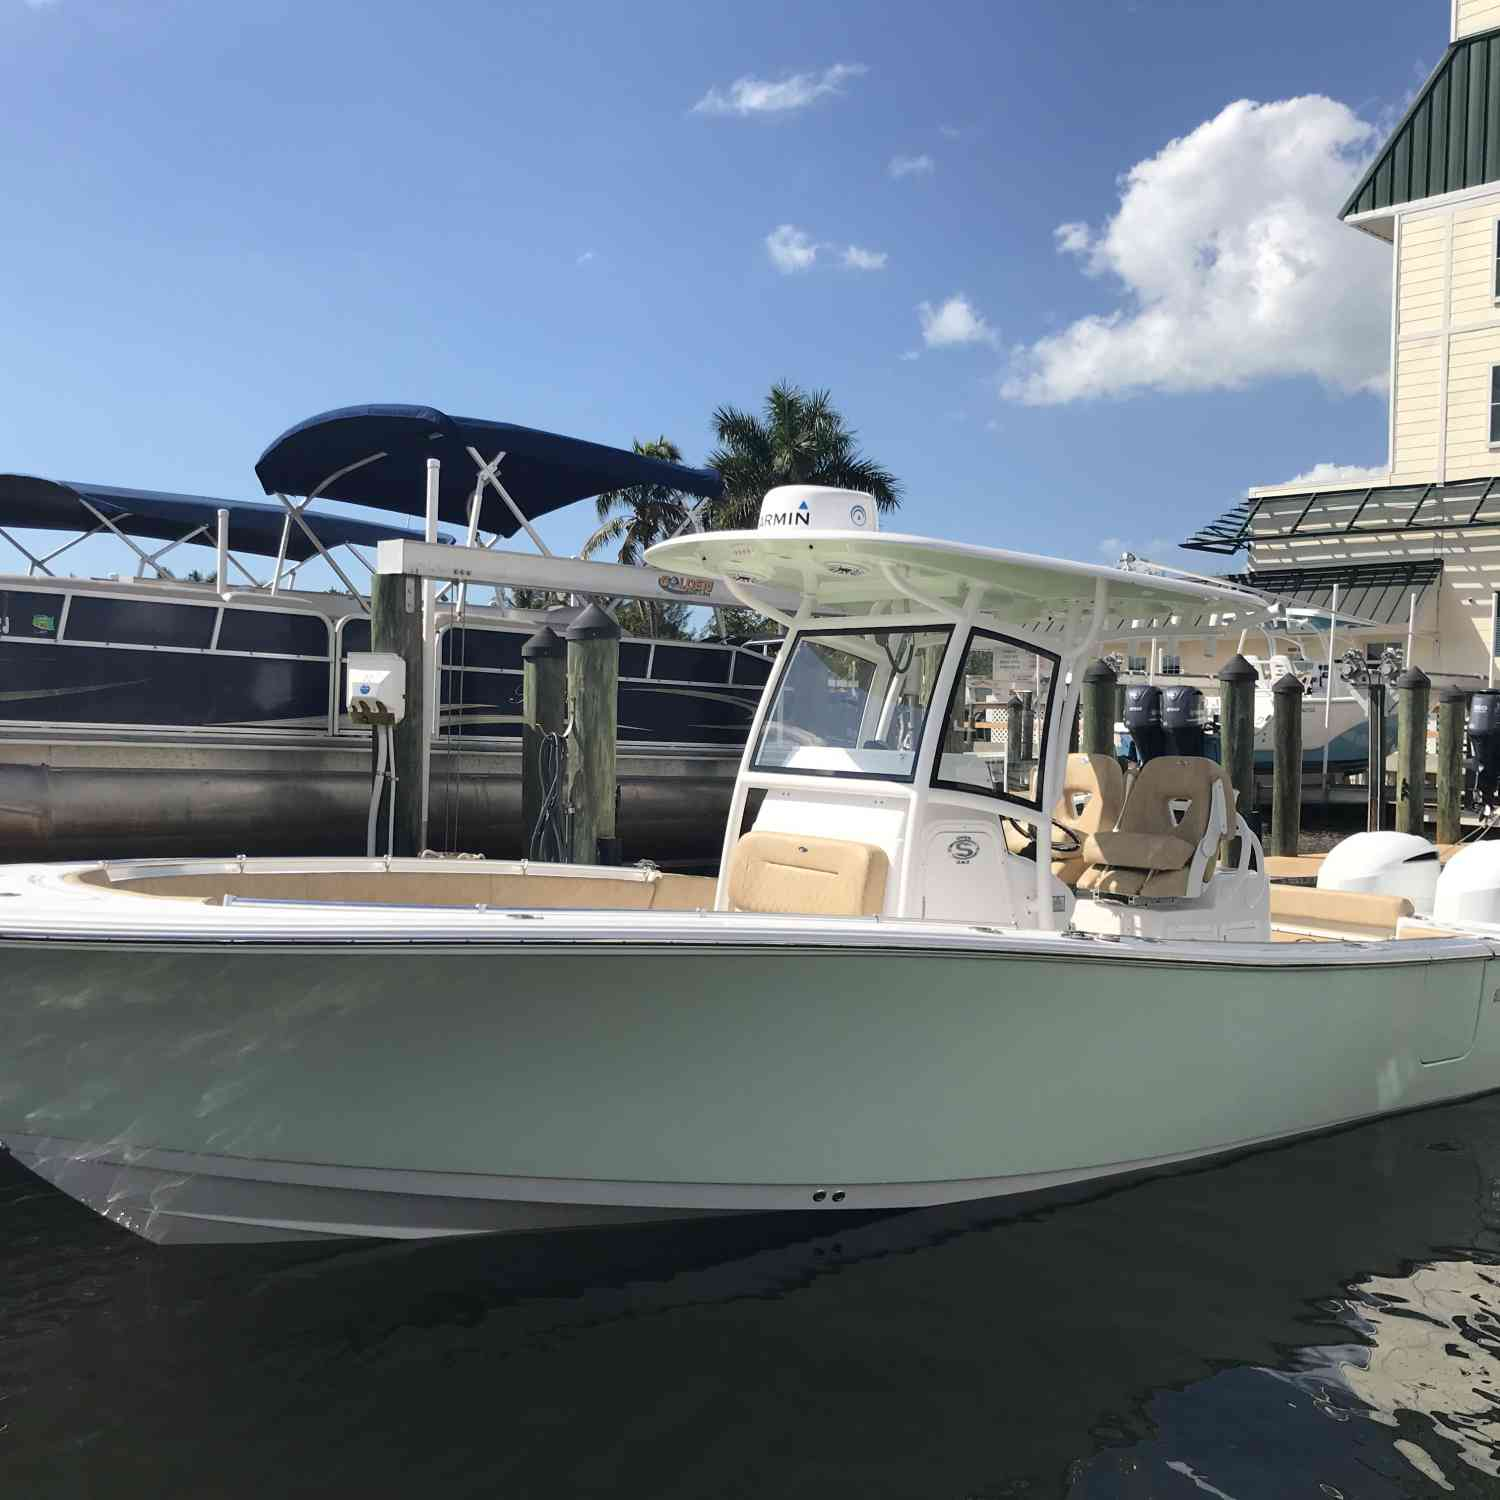 Title: She is Home - On board their Sportsman Open 282 Center Console - Location: Bonita Springs Florida. Participating in the Photo Contest #SportsmanApril2019